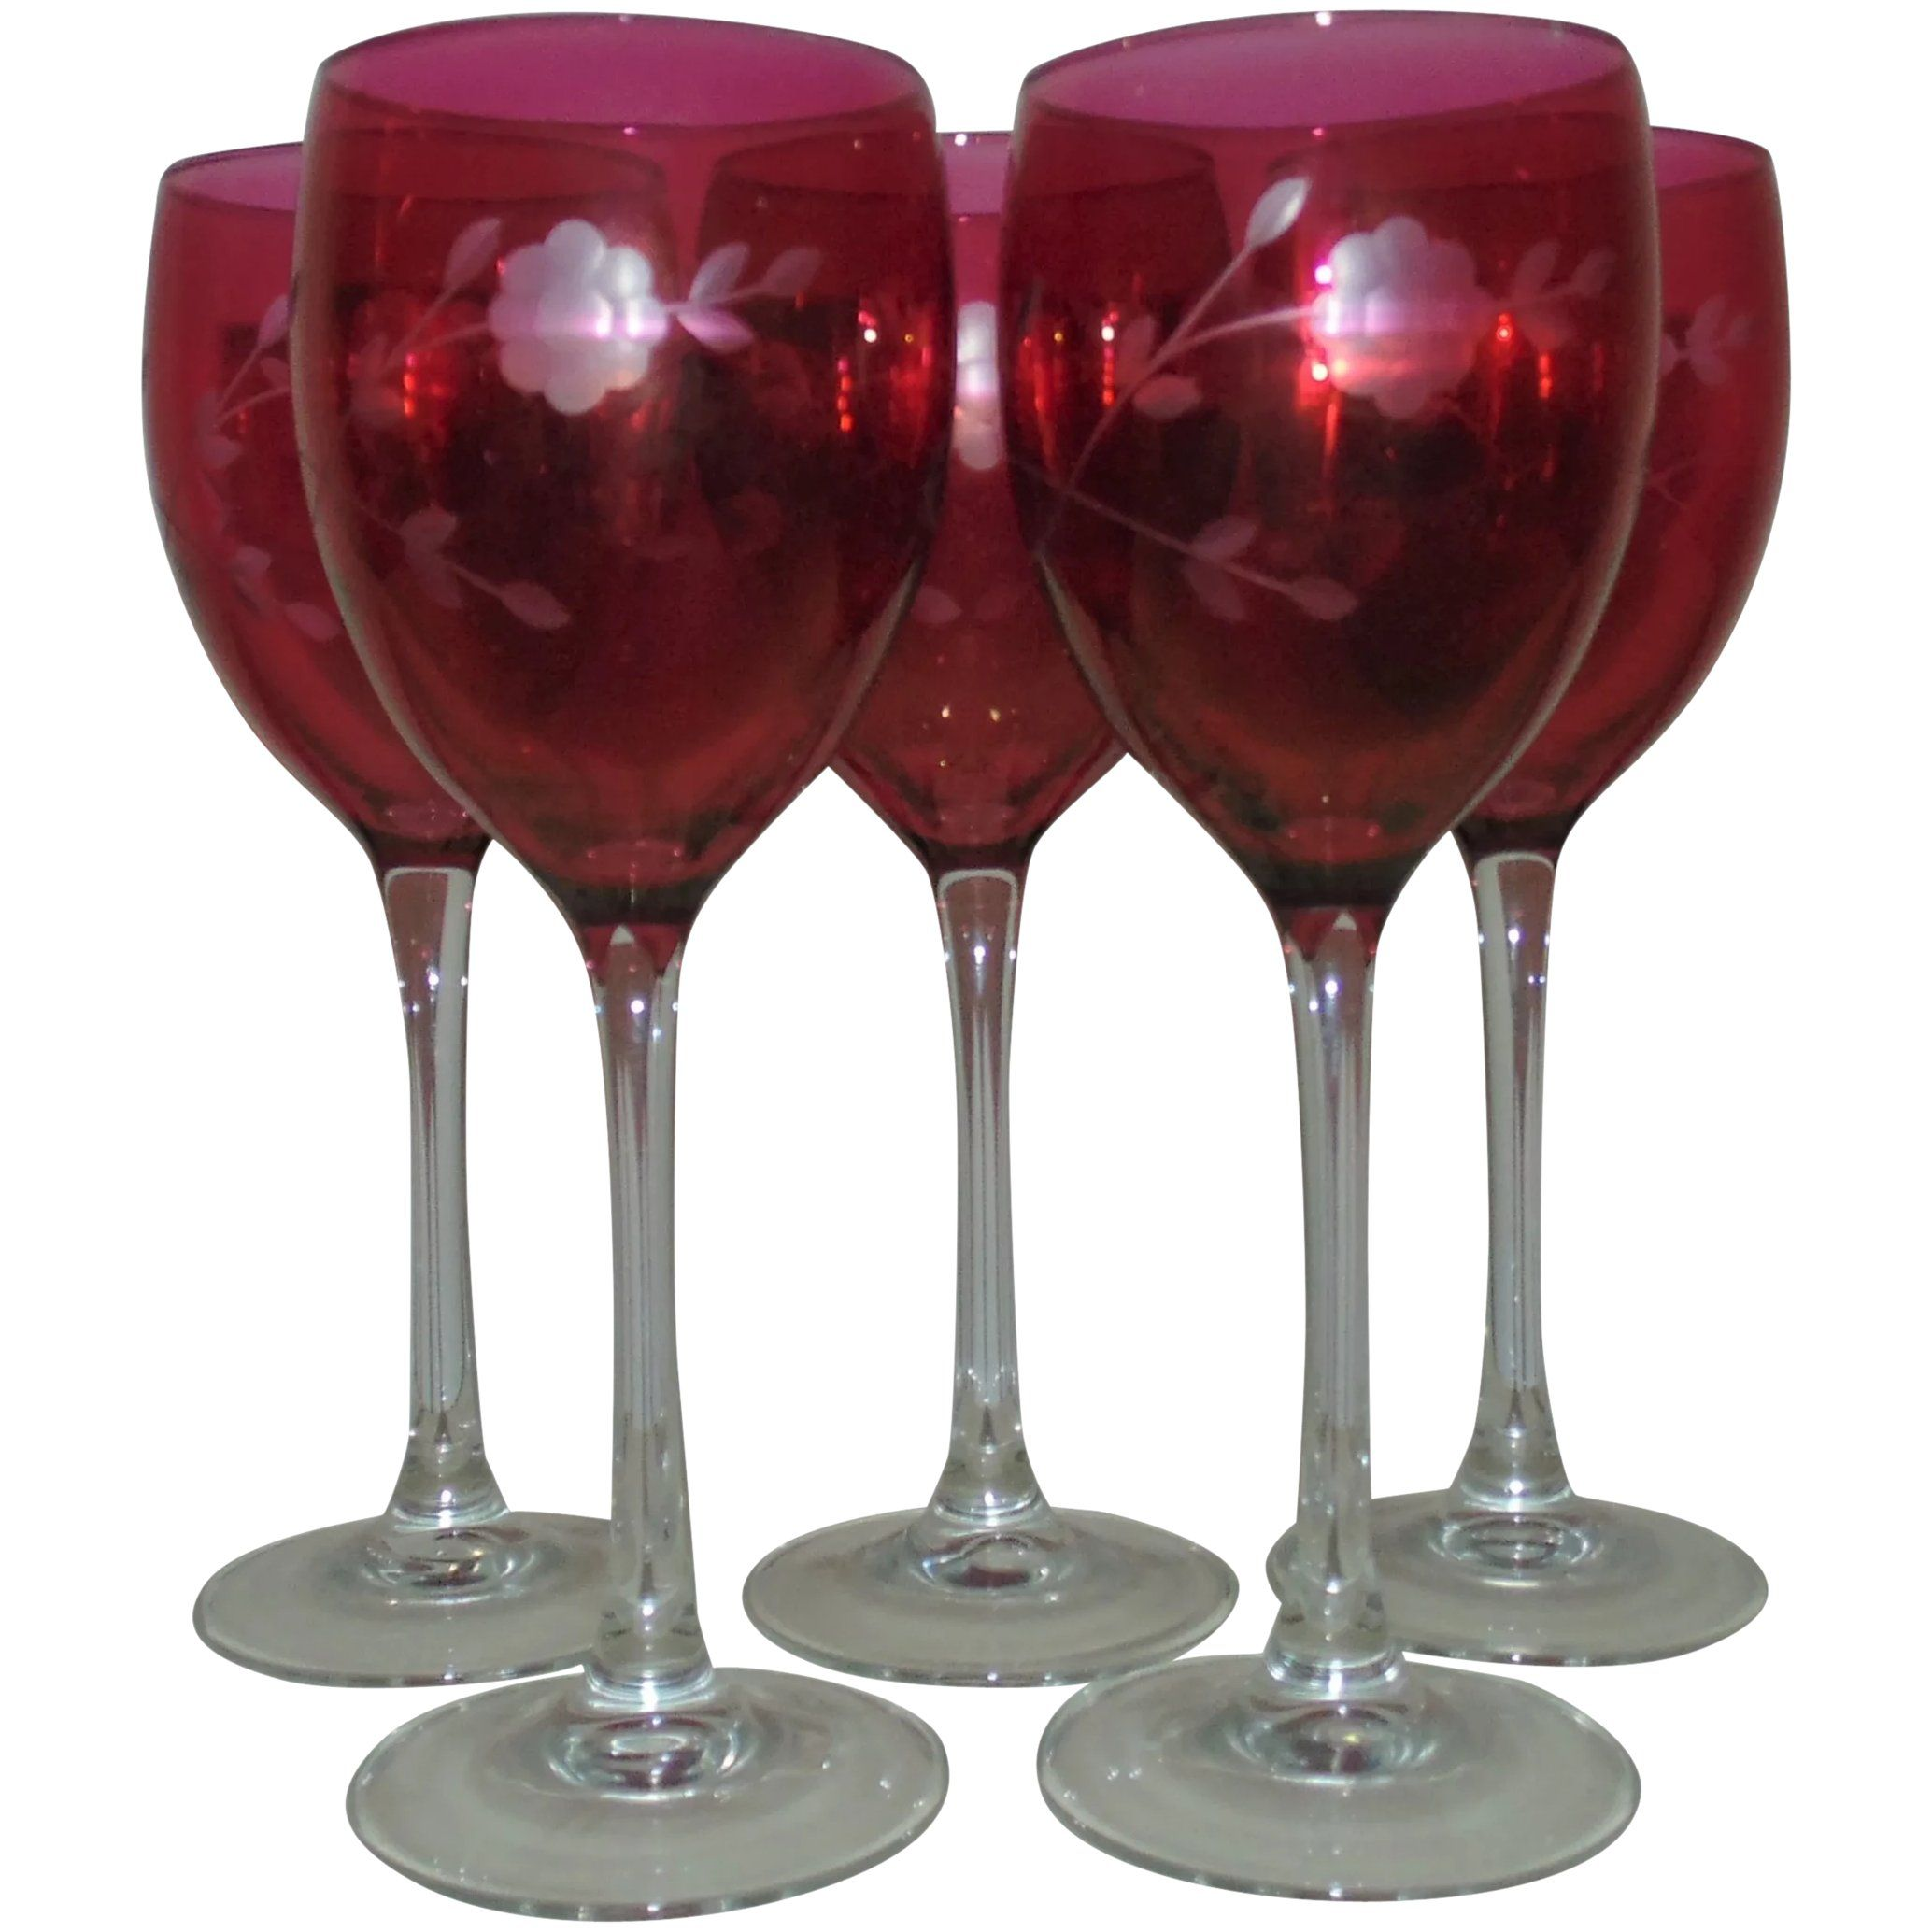 Set Of 5 Bohemian Cranberry Wine Glasses Etched Glass Stems Stemware Czech Czechoslovakian In 2020 Cranberry Wine Wine Glasses Wine